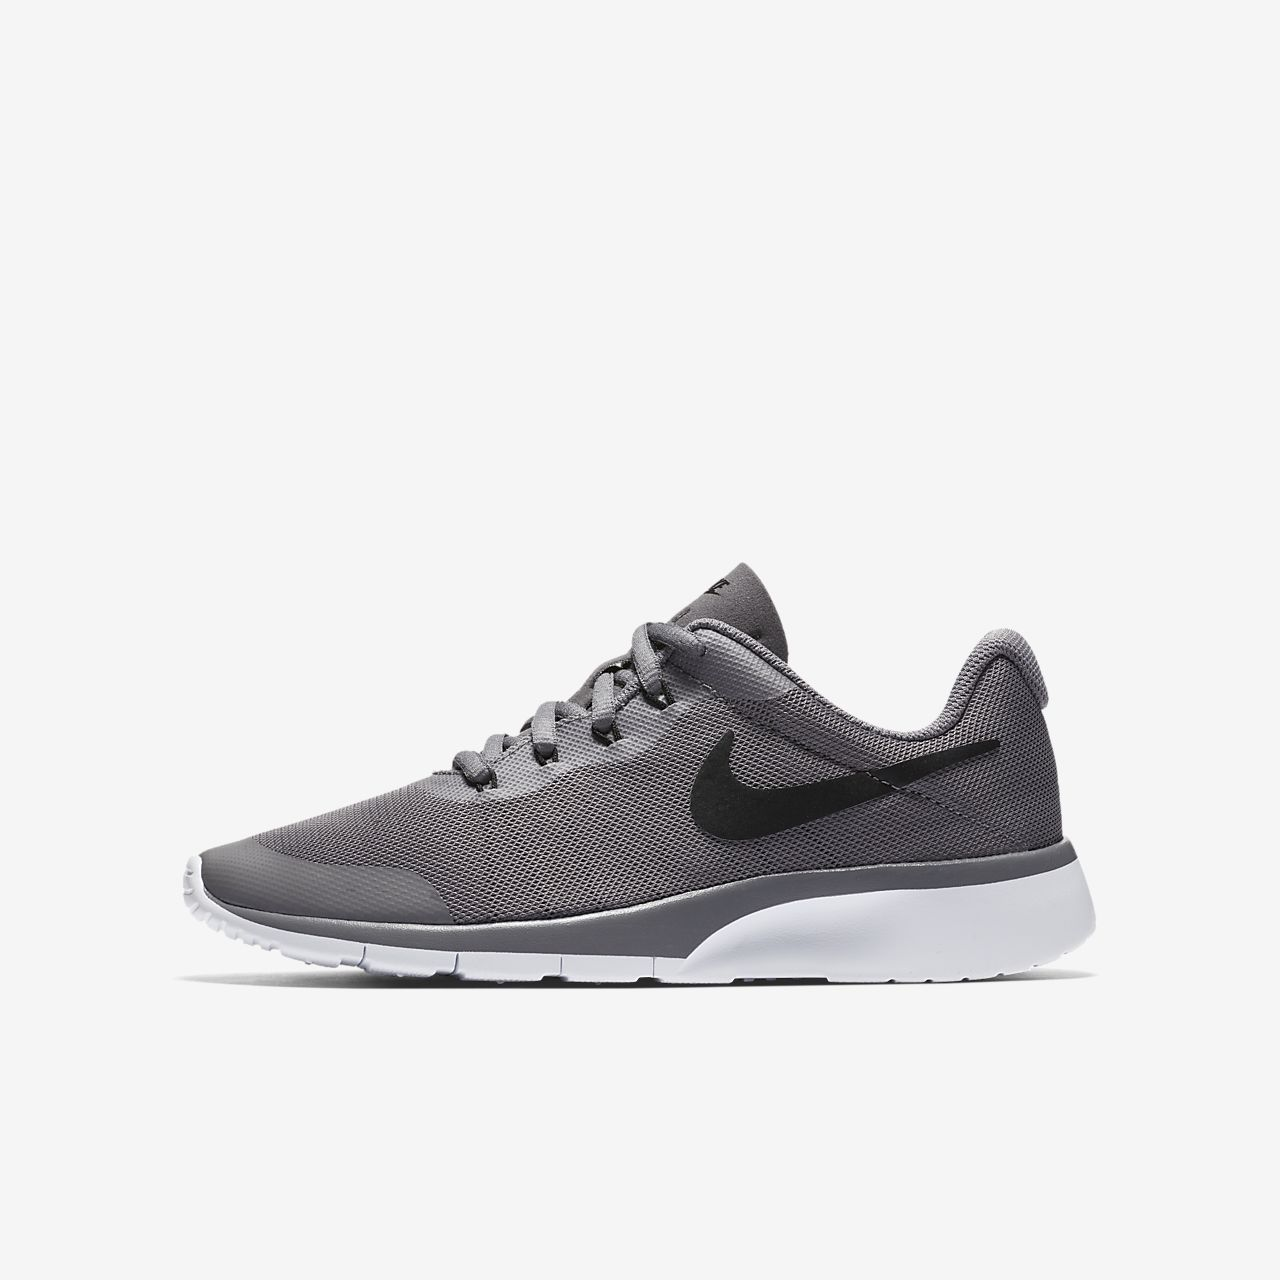 Nike Tanjun Racer Big Kids' Shoe